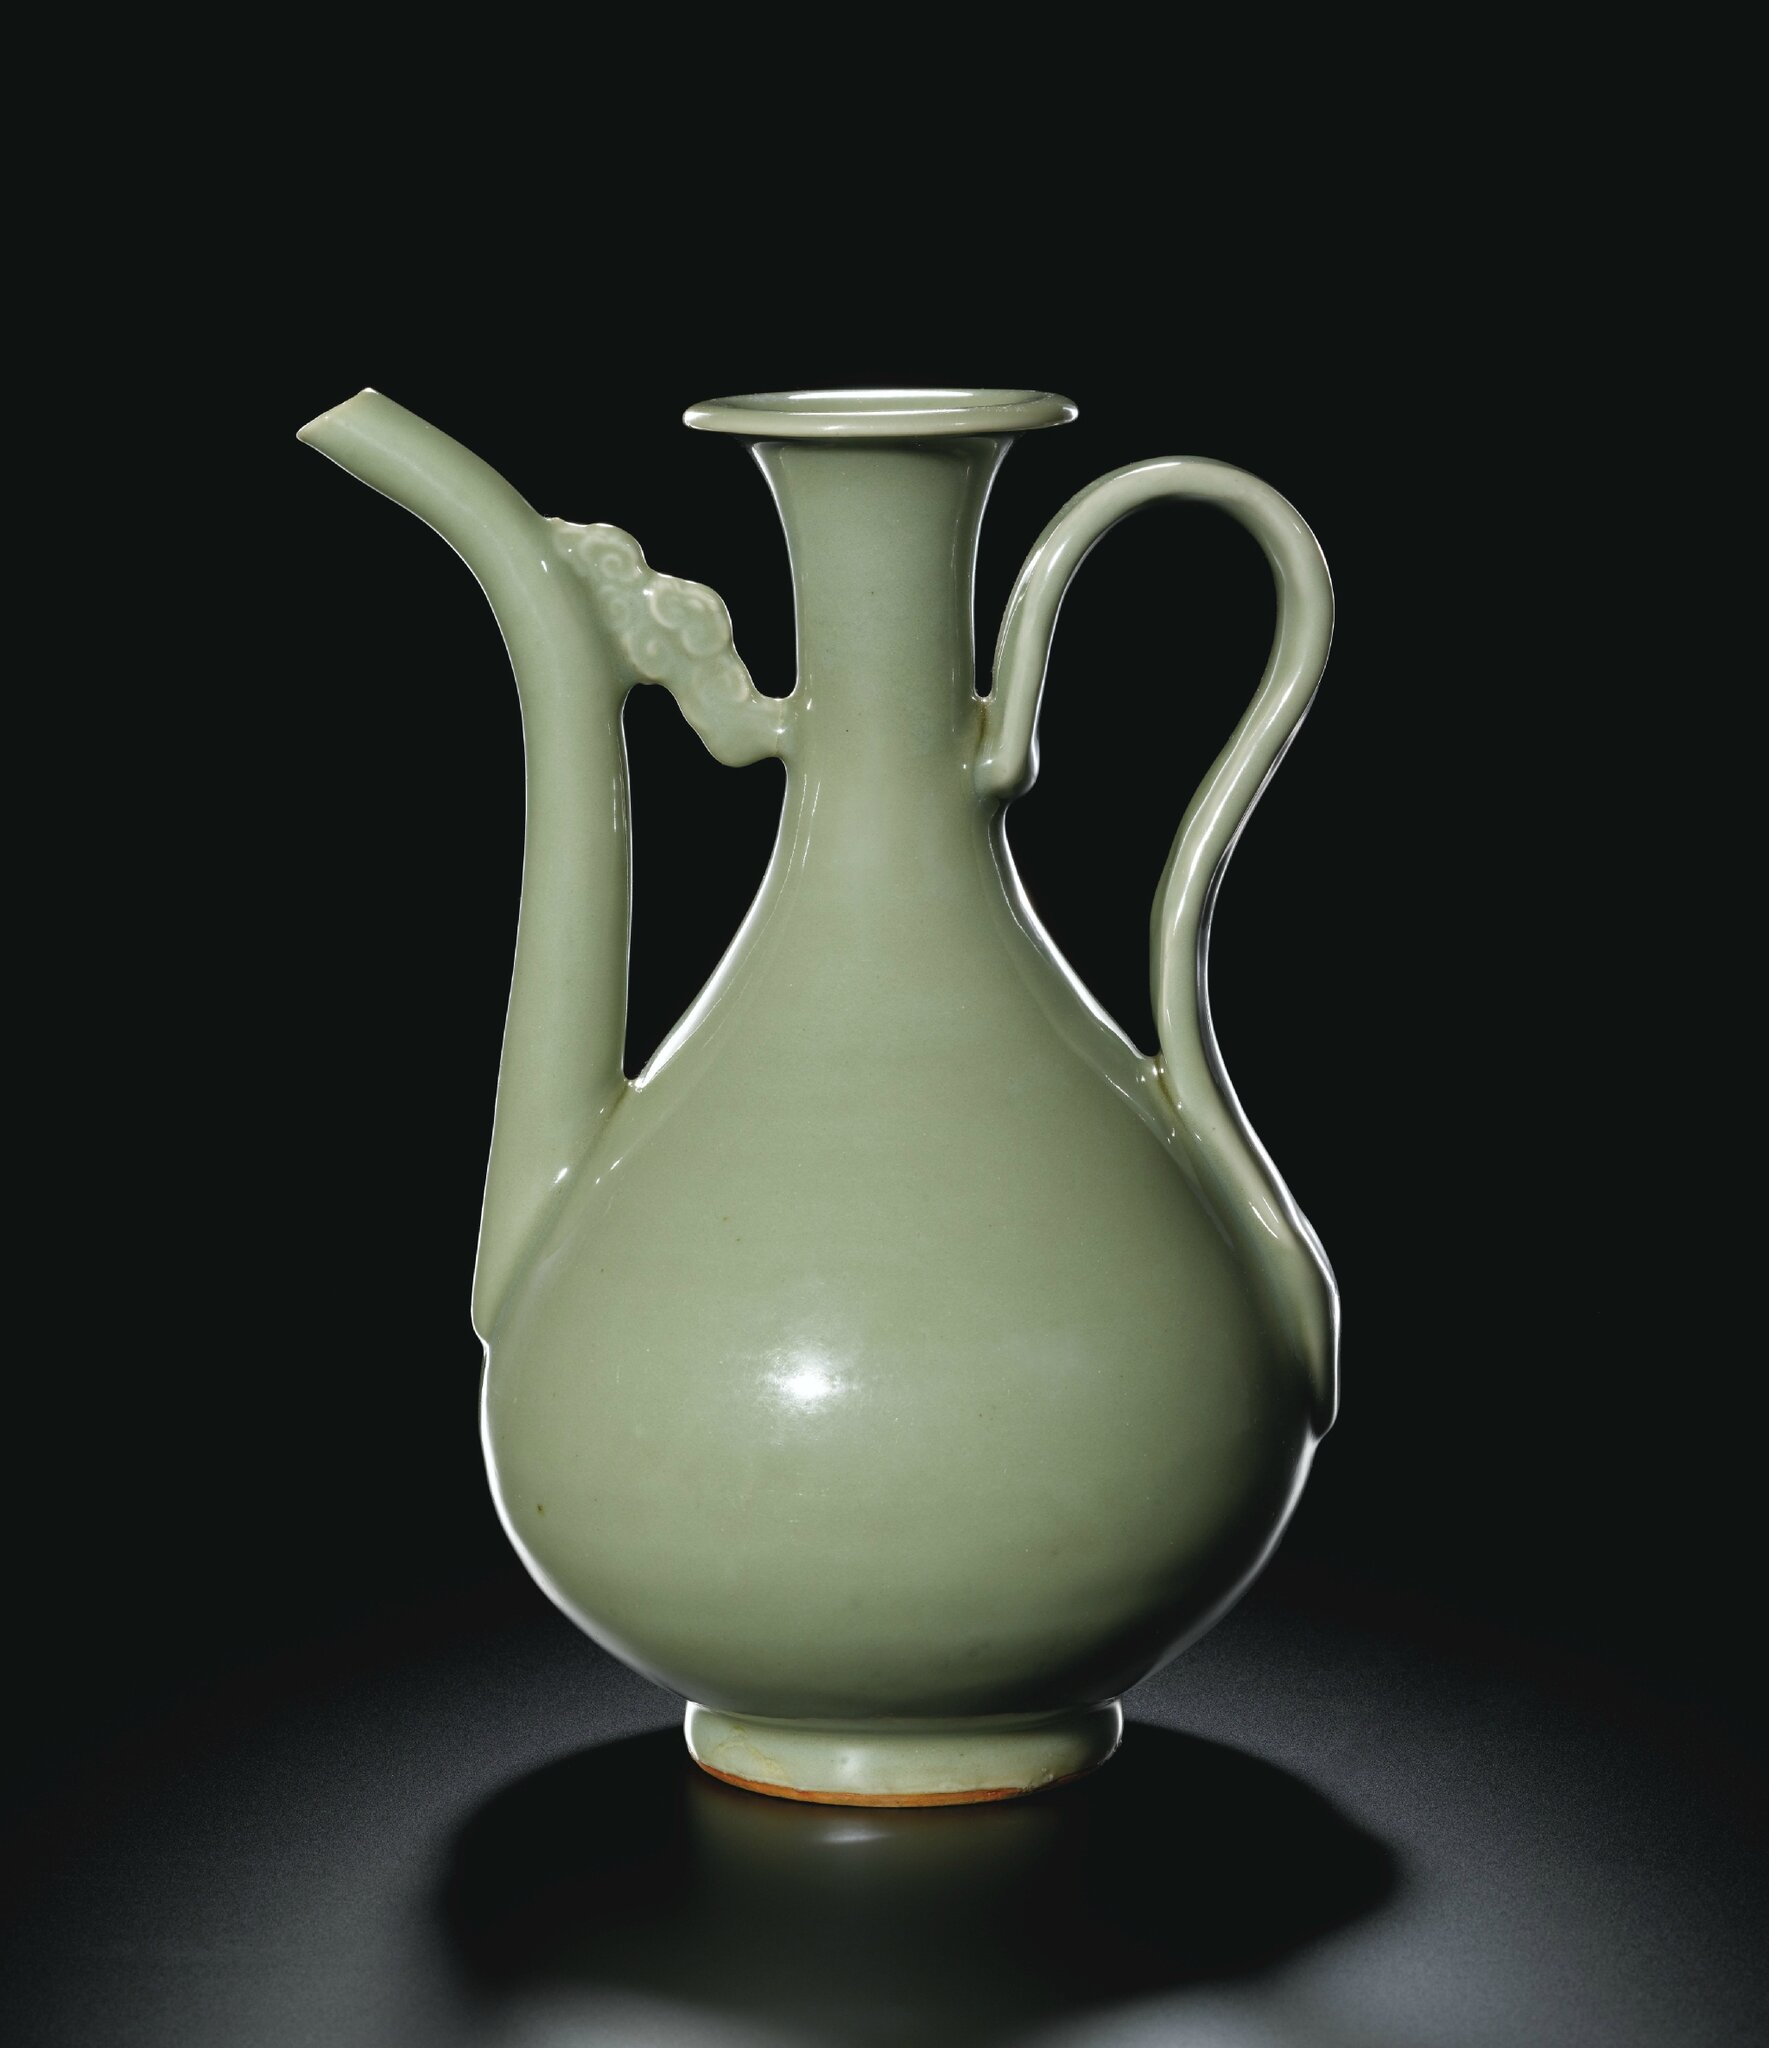 An exceptional Longquan celadon ewer, Ming dynasty, early 15th century